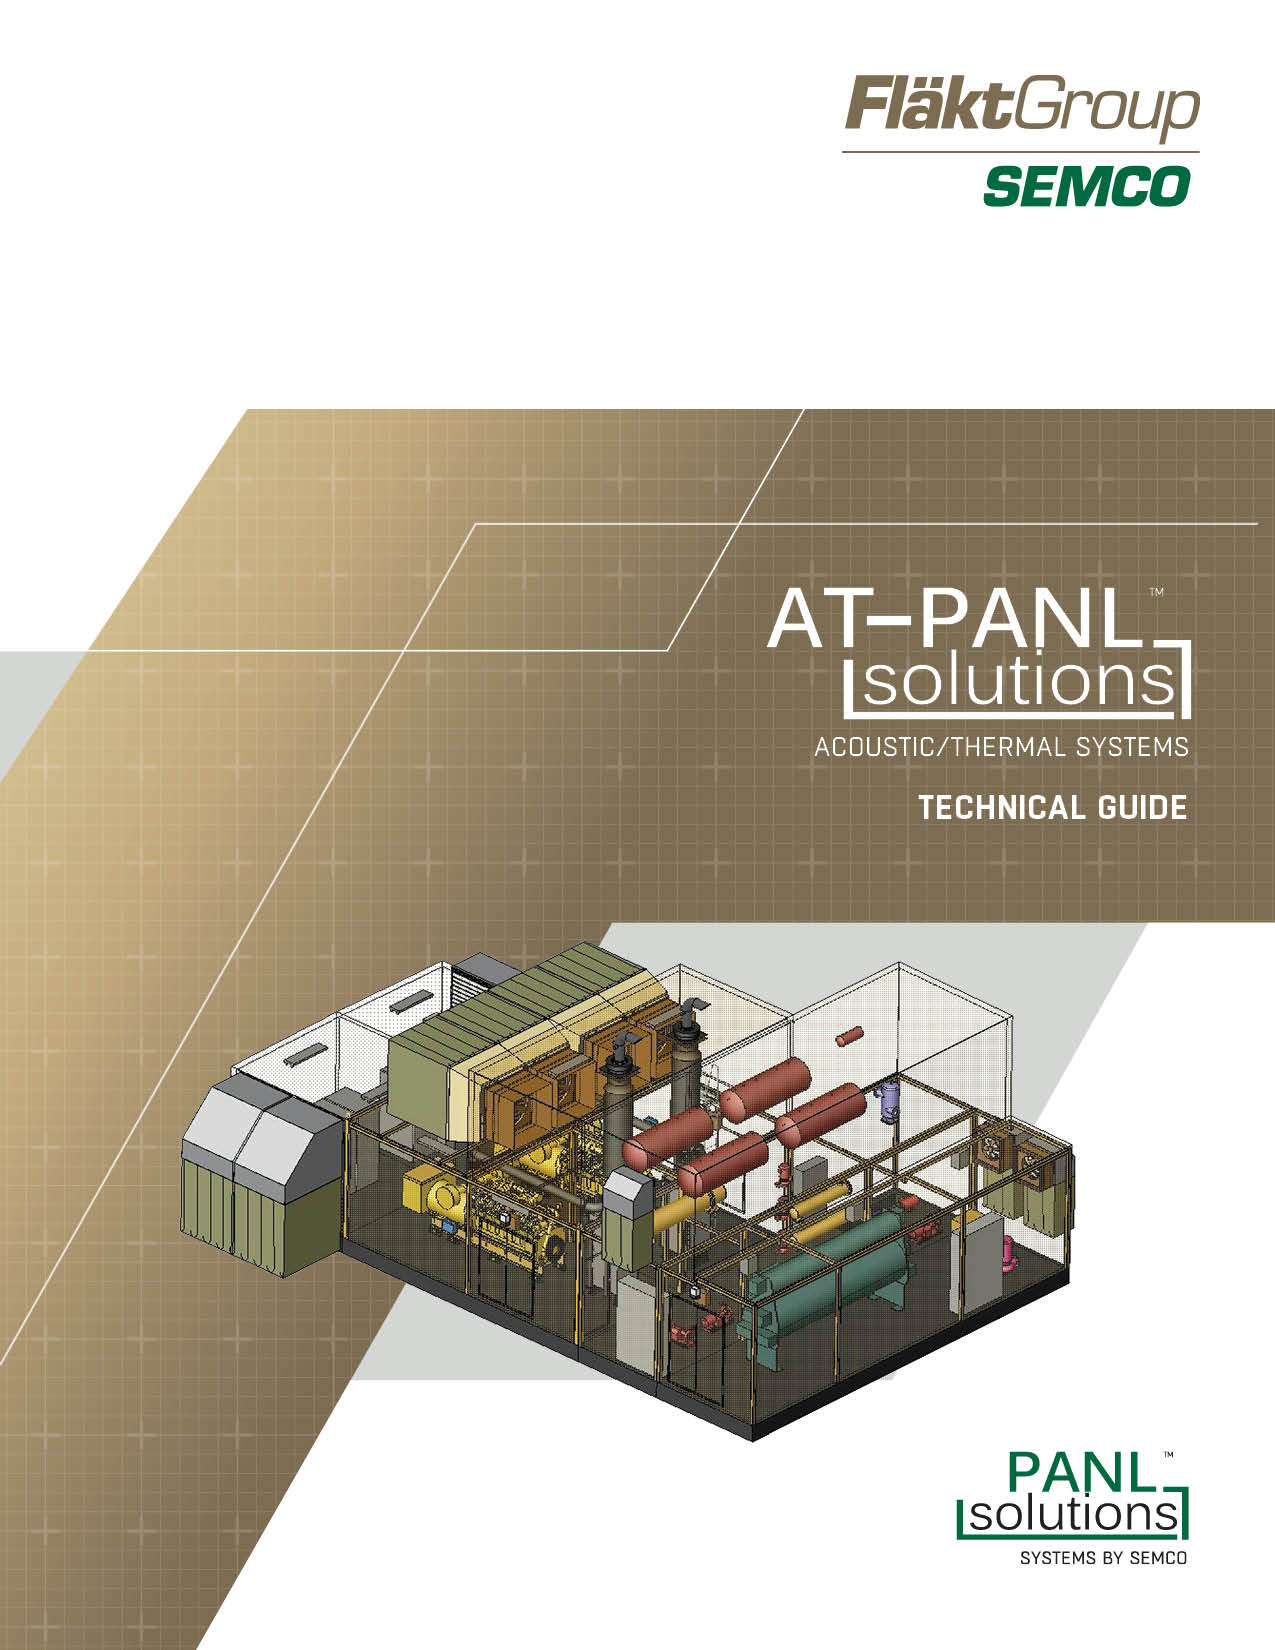 Acoustic Thermal Panel Technical Guide - FlaktGroup Semco 2018-02.jpg